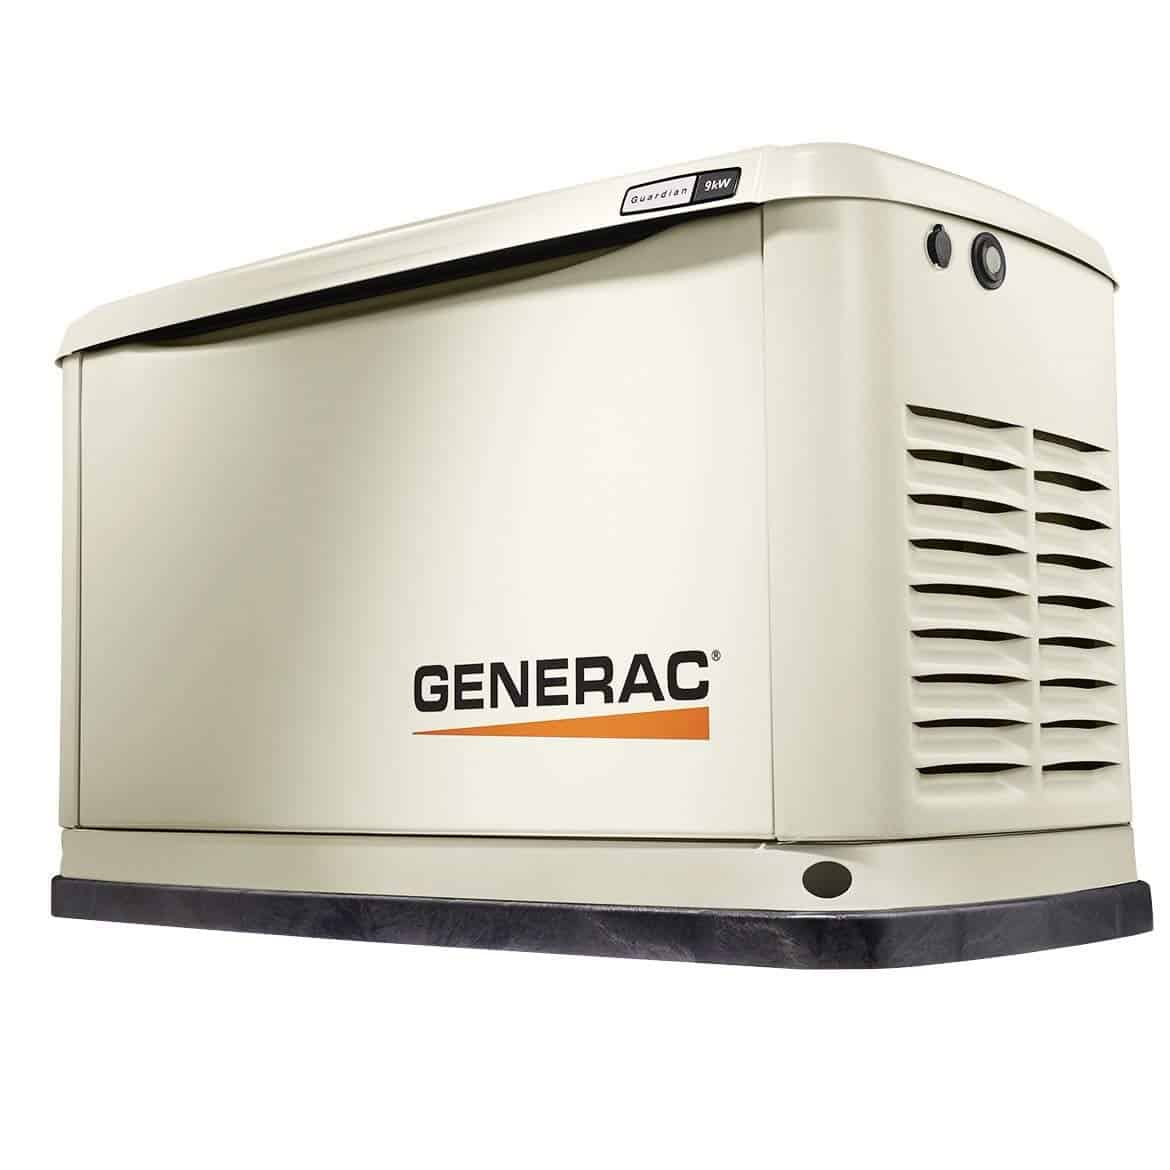 Generac 7029 Guardian Series 9kW/8kW Air Cooled Home Standby Generator